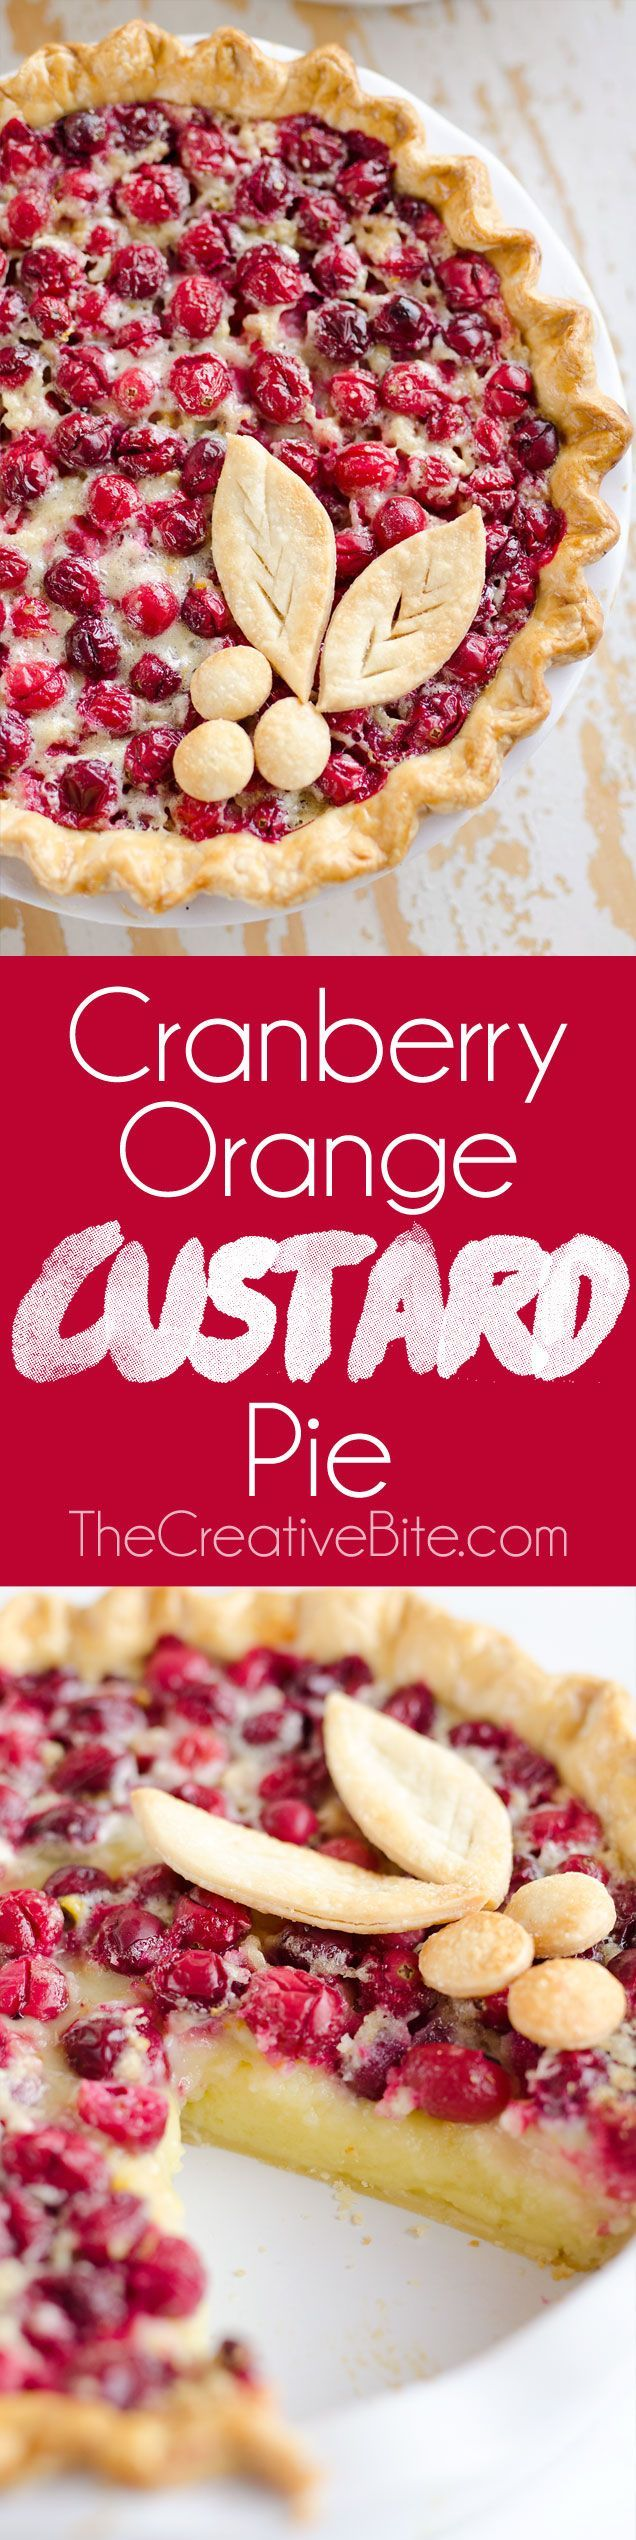 Cranberry Orange Custard Pie is a festive and unique pie to enjoy during the holiday season. A flaky pie crust is filled with silky sweet custard laced with orange zest and tart cranberries for a special dessert. #Cranberry #Dessert #Pie http://www.thecre